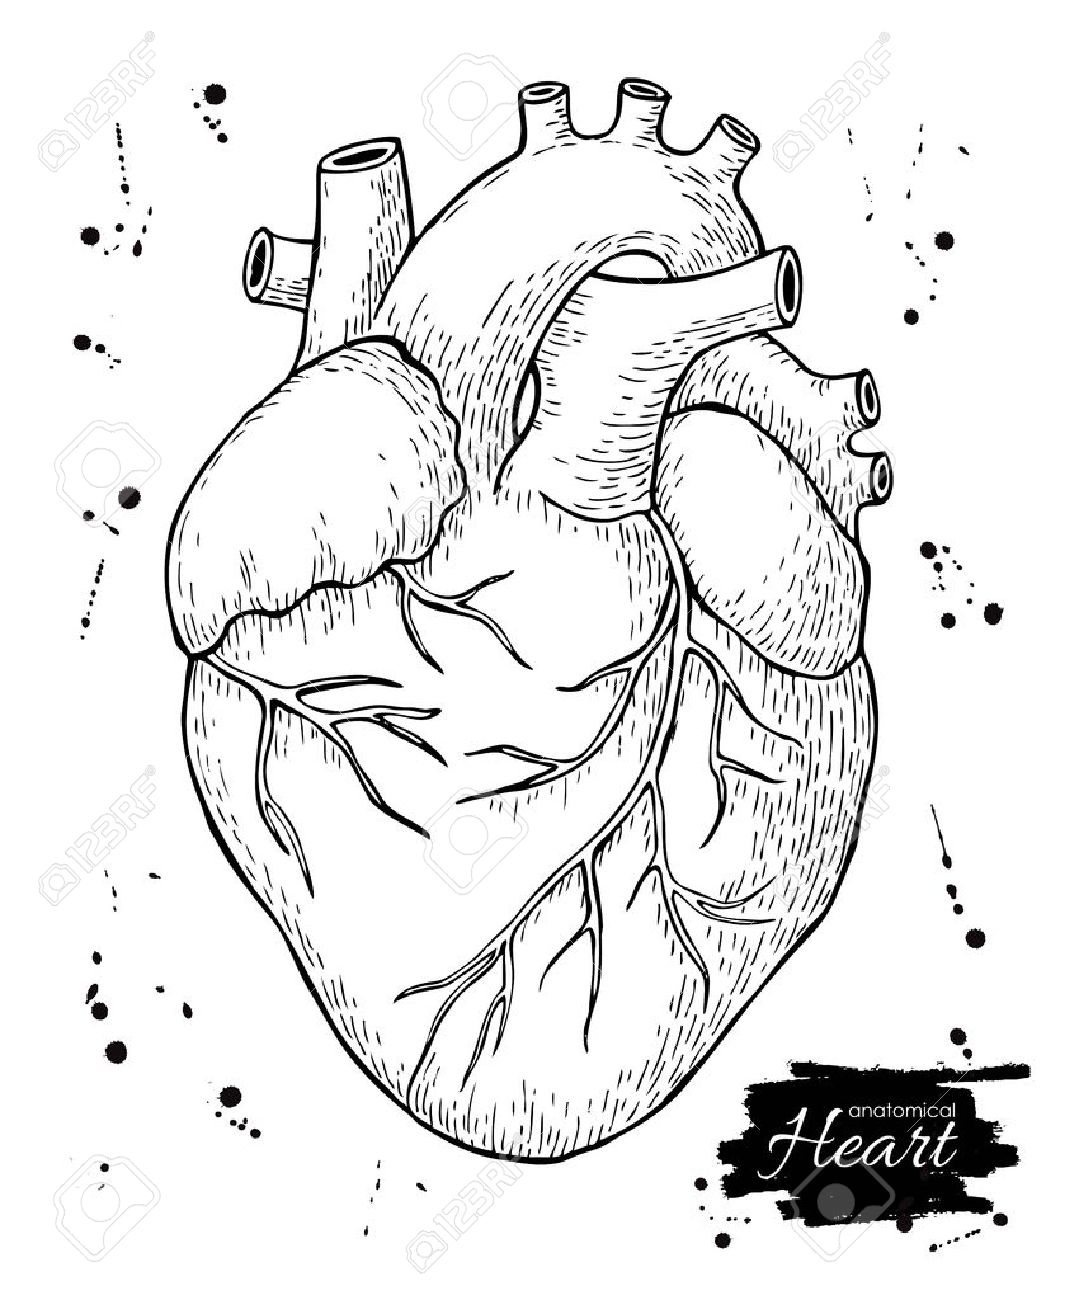 real heart coloring pages anatomical drawing heart at getdrawings free download heart pages real coloring